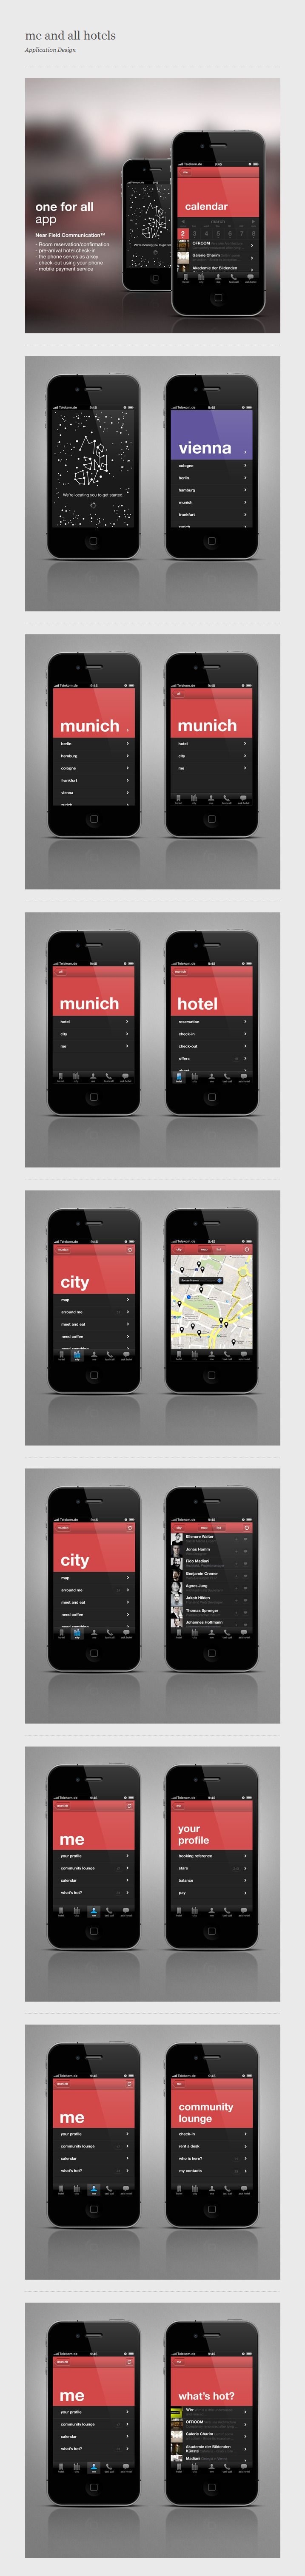 me and all hotels - iPhone App / Conny Naumann #ui #design #user #iterface #ios